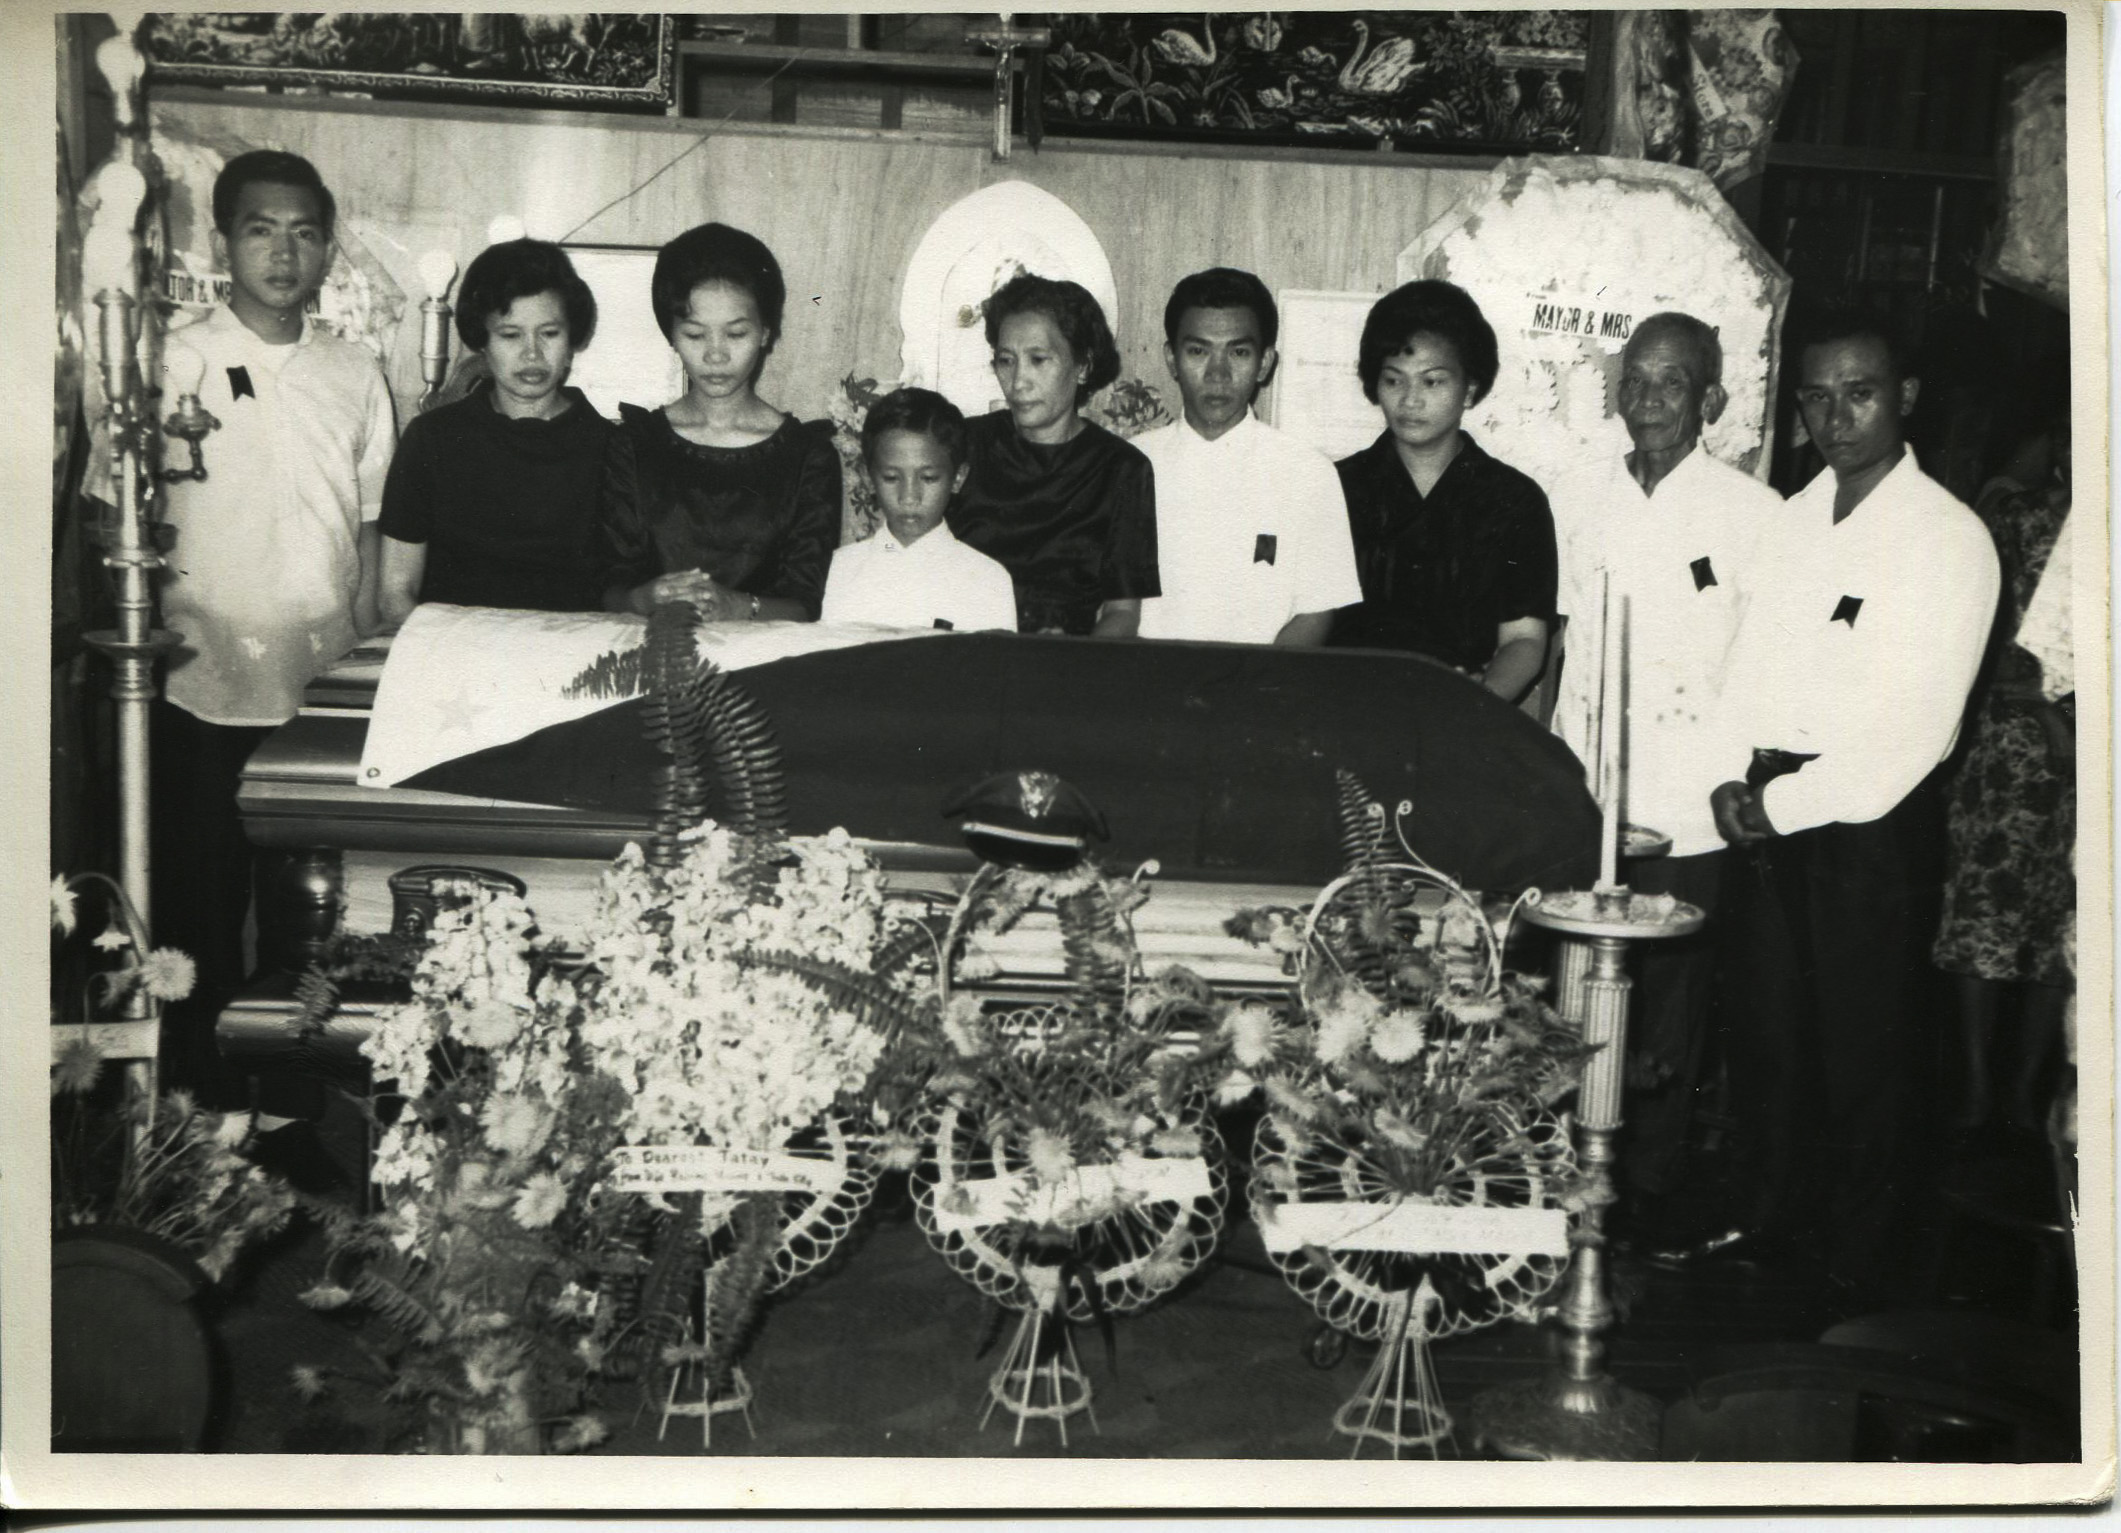 """Photo of Arguelles' family, October 13, 1967.  Arguelles acquired the photo in 2011 when her dad died. It was taken at Jaro Cathedral in Iloilo City at Arguelles' grandfather's funeral. The grandfather was a policeman and his funeral was very impressive with salutes and tributes. Left to right: Pedro (uncle), Magdalena (mother), Isabel (aunt), Eliseo (uncle), """"Noning"""" Dionisia (step grandmother), Ismael (uncle), Amparo (aunt), unknown, father """"Toting"""" Jose. Arguelles likes that this picture shows how important Catholicism has been to her family, and how well loved her grandfather was.   Any views, findings, conclusions, or recommendations expressed in this story do not necessarily represent those of the National Endowment for the Humanities. (c) Field Museum of Natural History - CC BY-NC 4.0"""